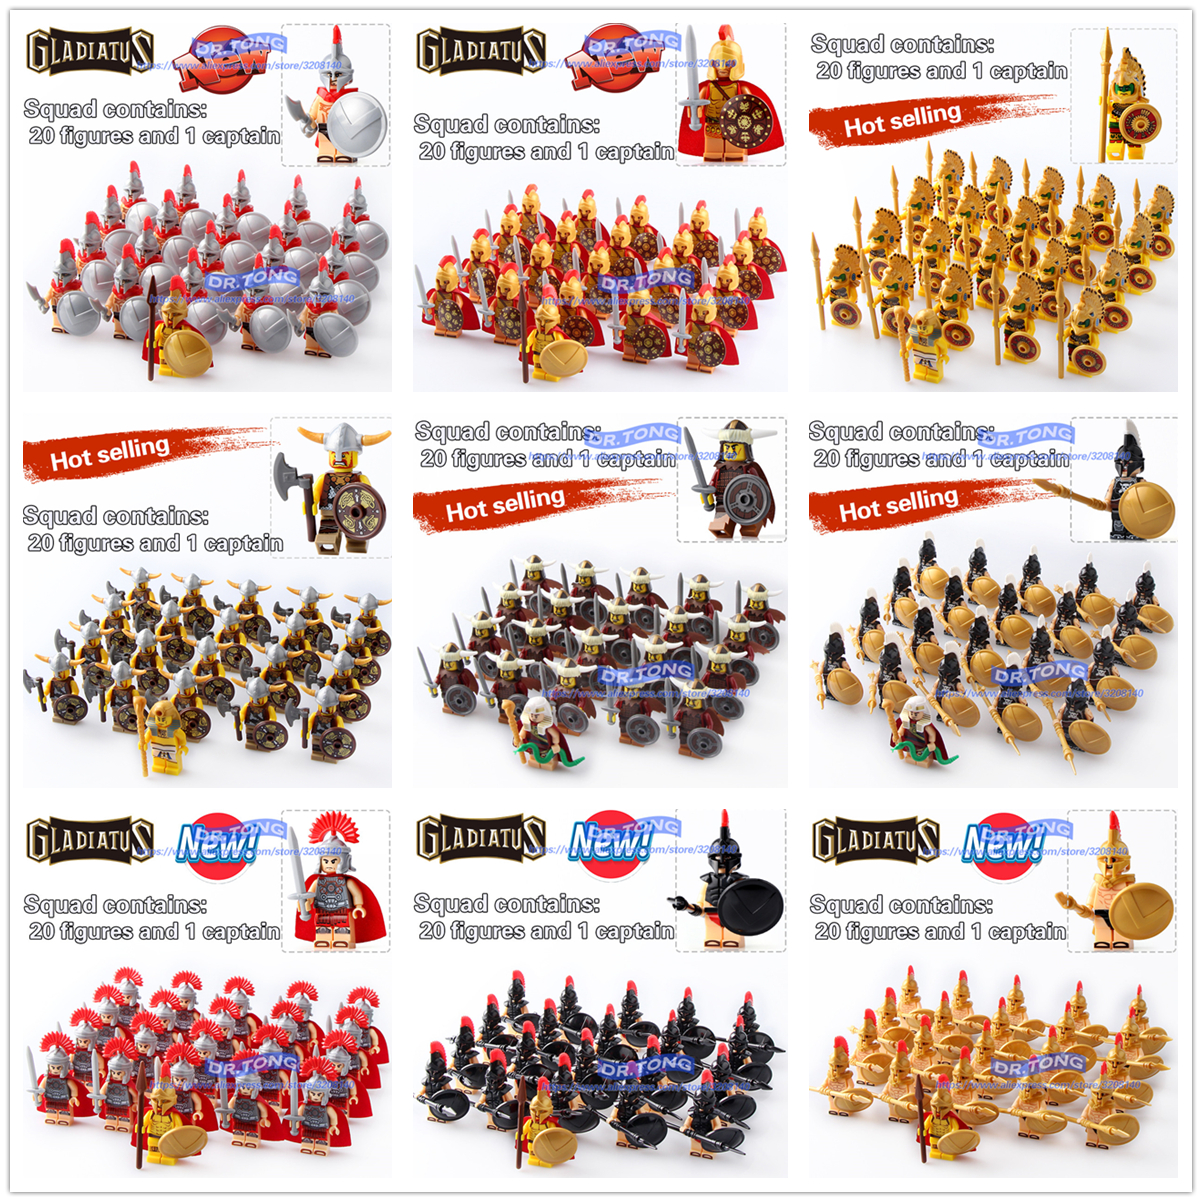 DR.TONG 21PCS/LOT Gladiatus Warriors Rome Fighters Medieval Castle Knights Building Blocks Brick Toys